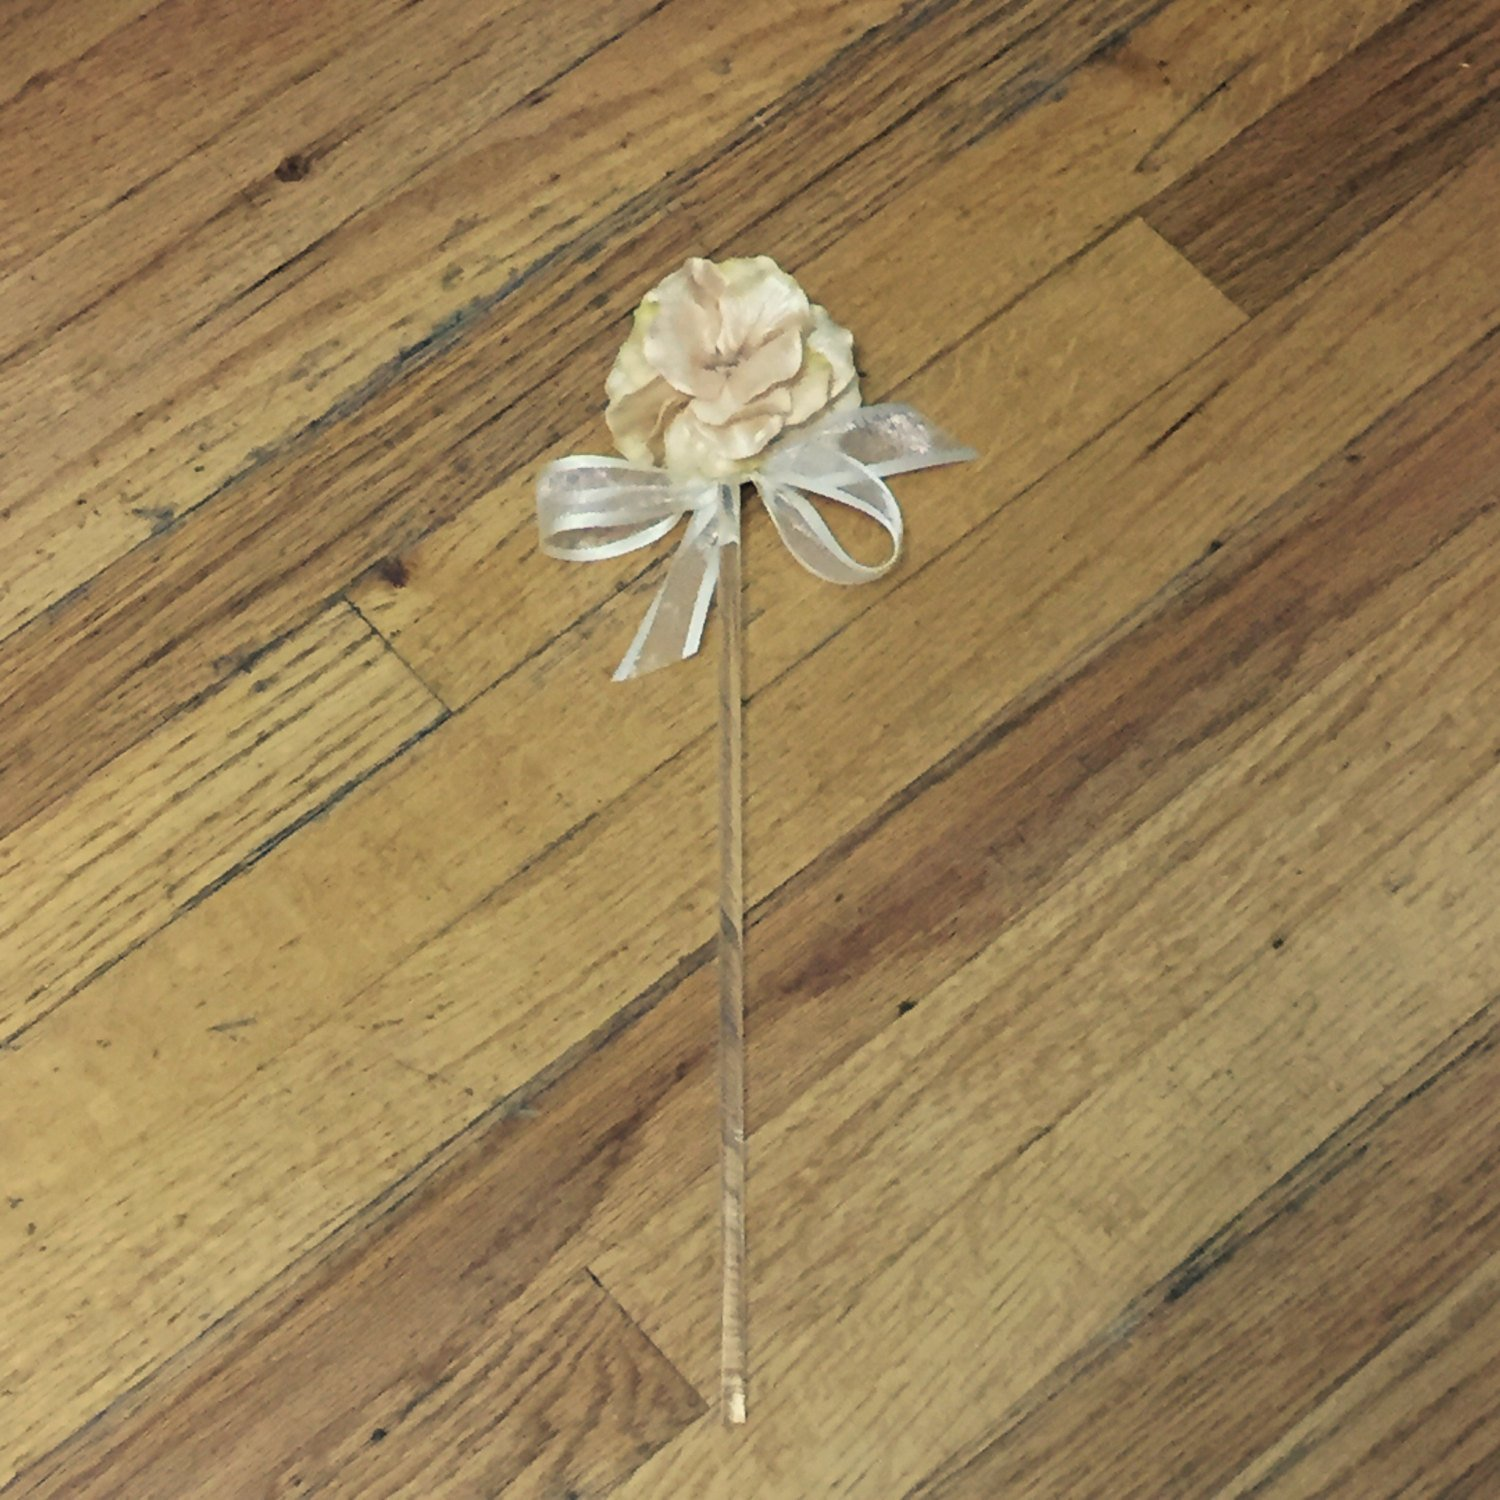 Gold Fairy Wand Halloween Costume Outfit Boho Woodland Wedding Flower Girl Accessory Fairytale Princess Dress Up First Birthday Party Favors